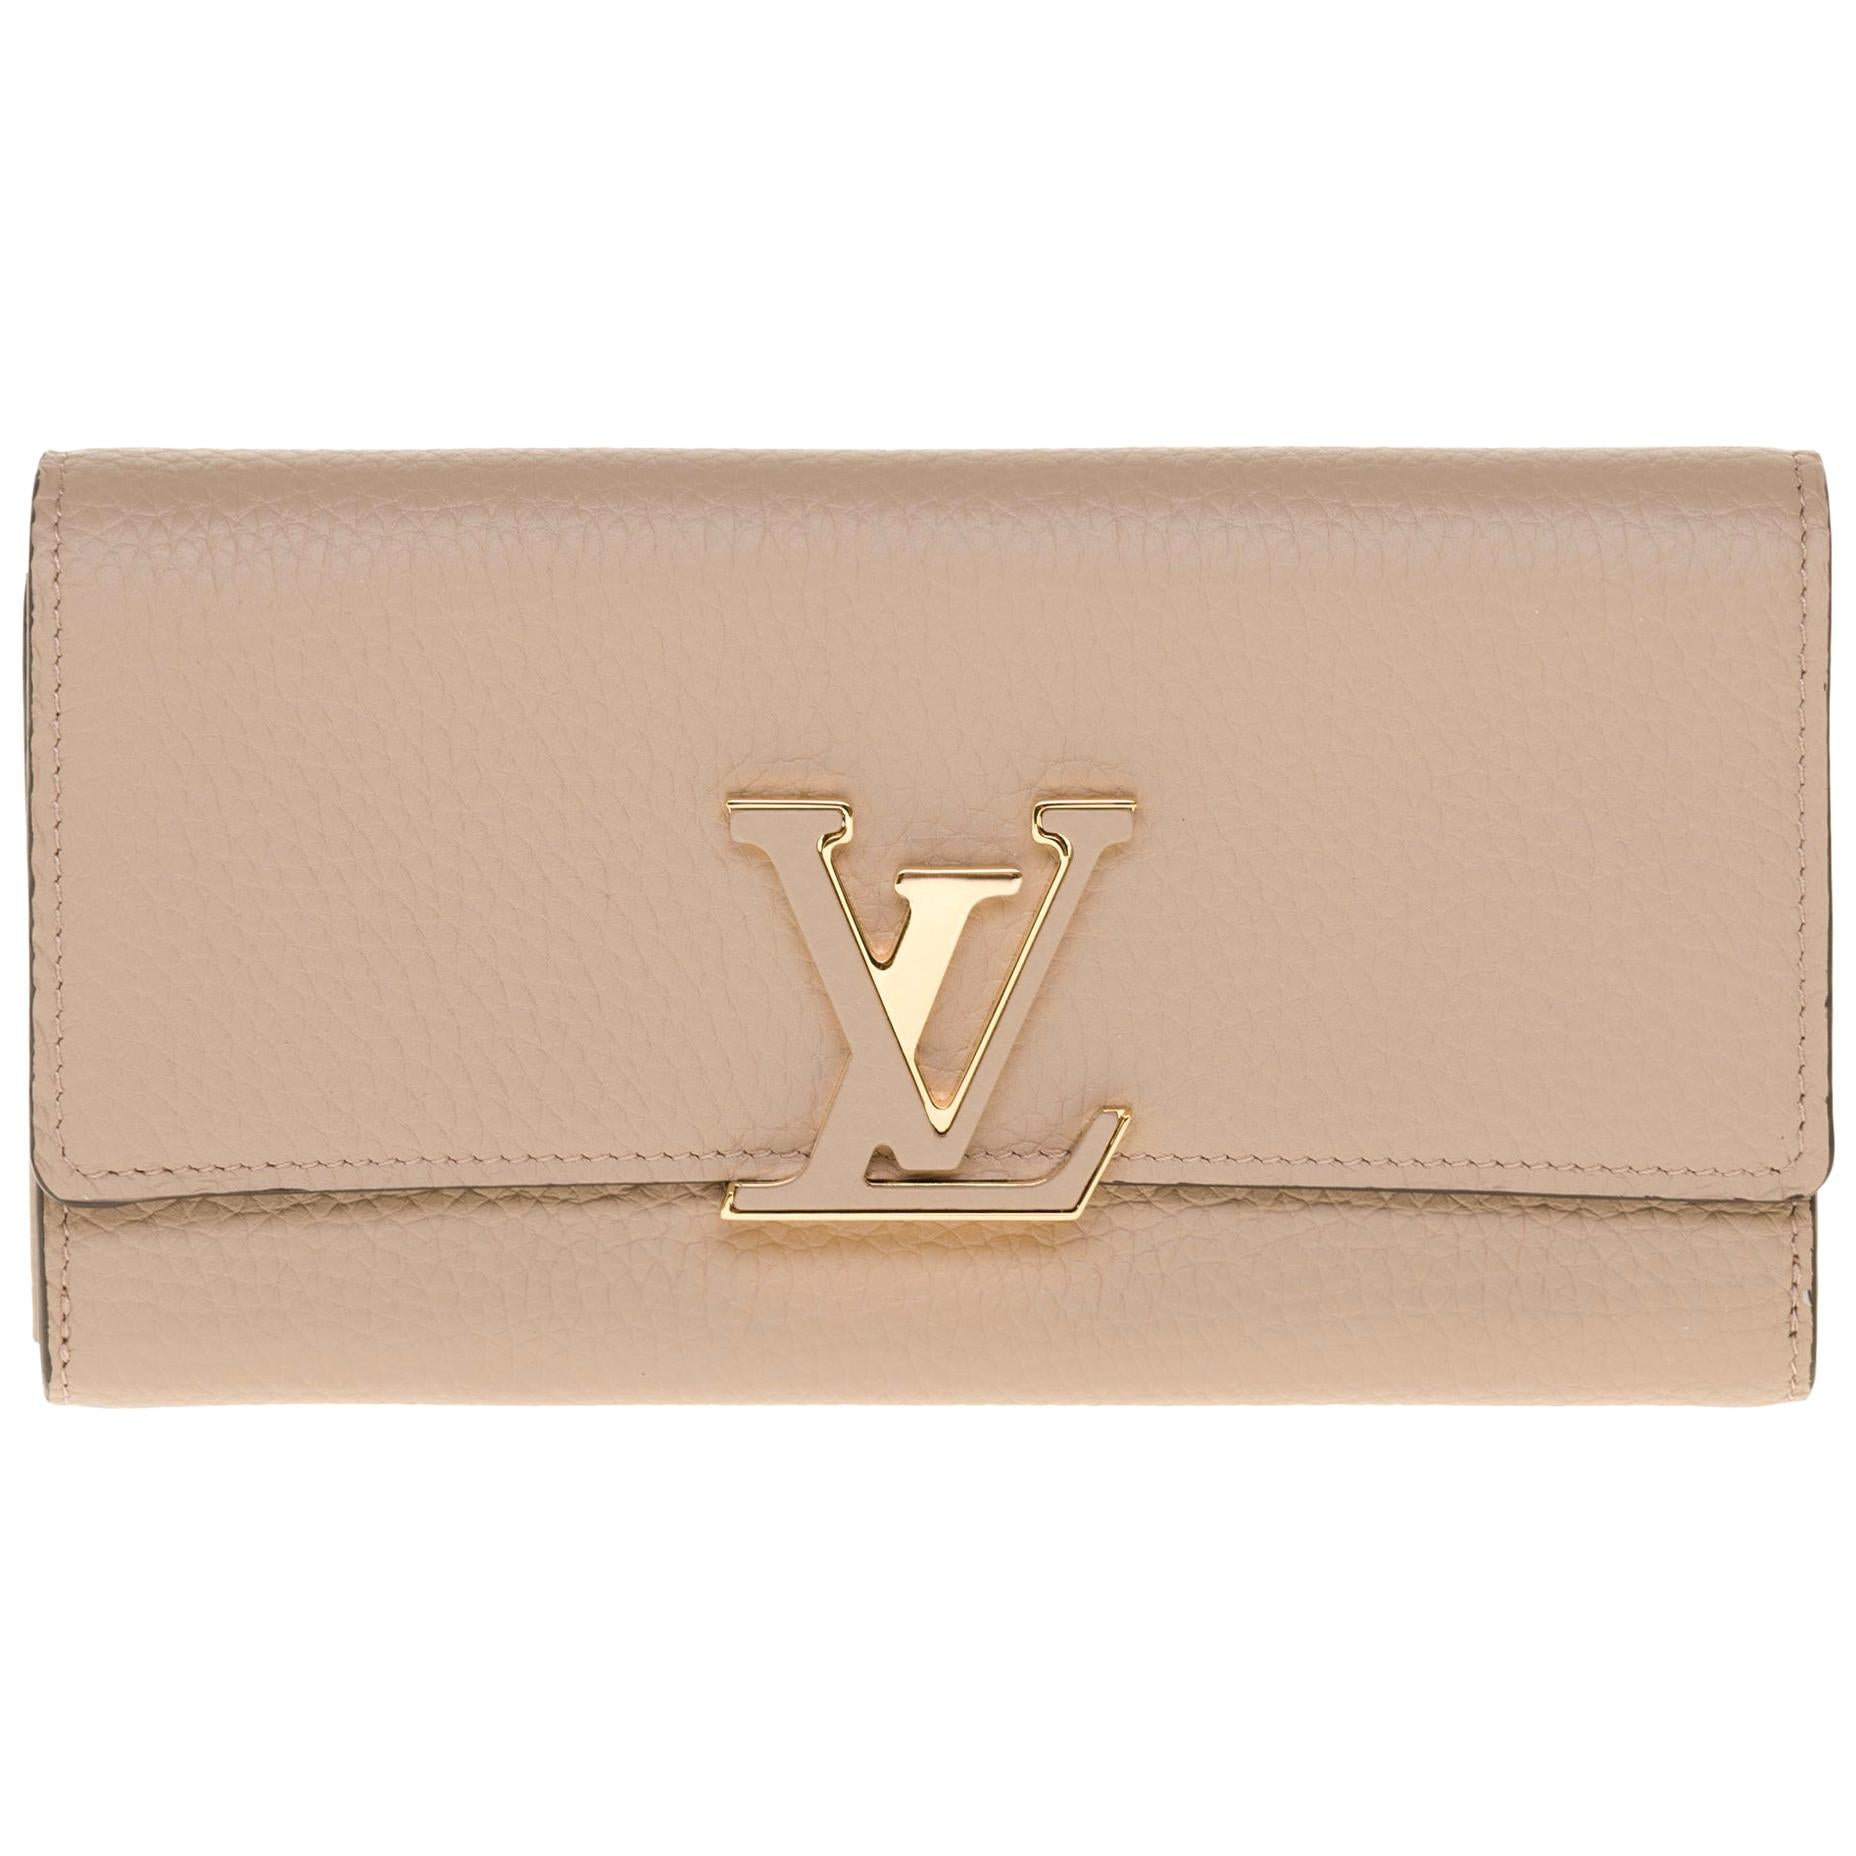 Brand New Louis Vuitton Capucines GM Wallet in beige Taurillon leather